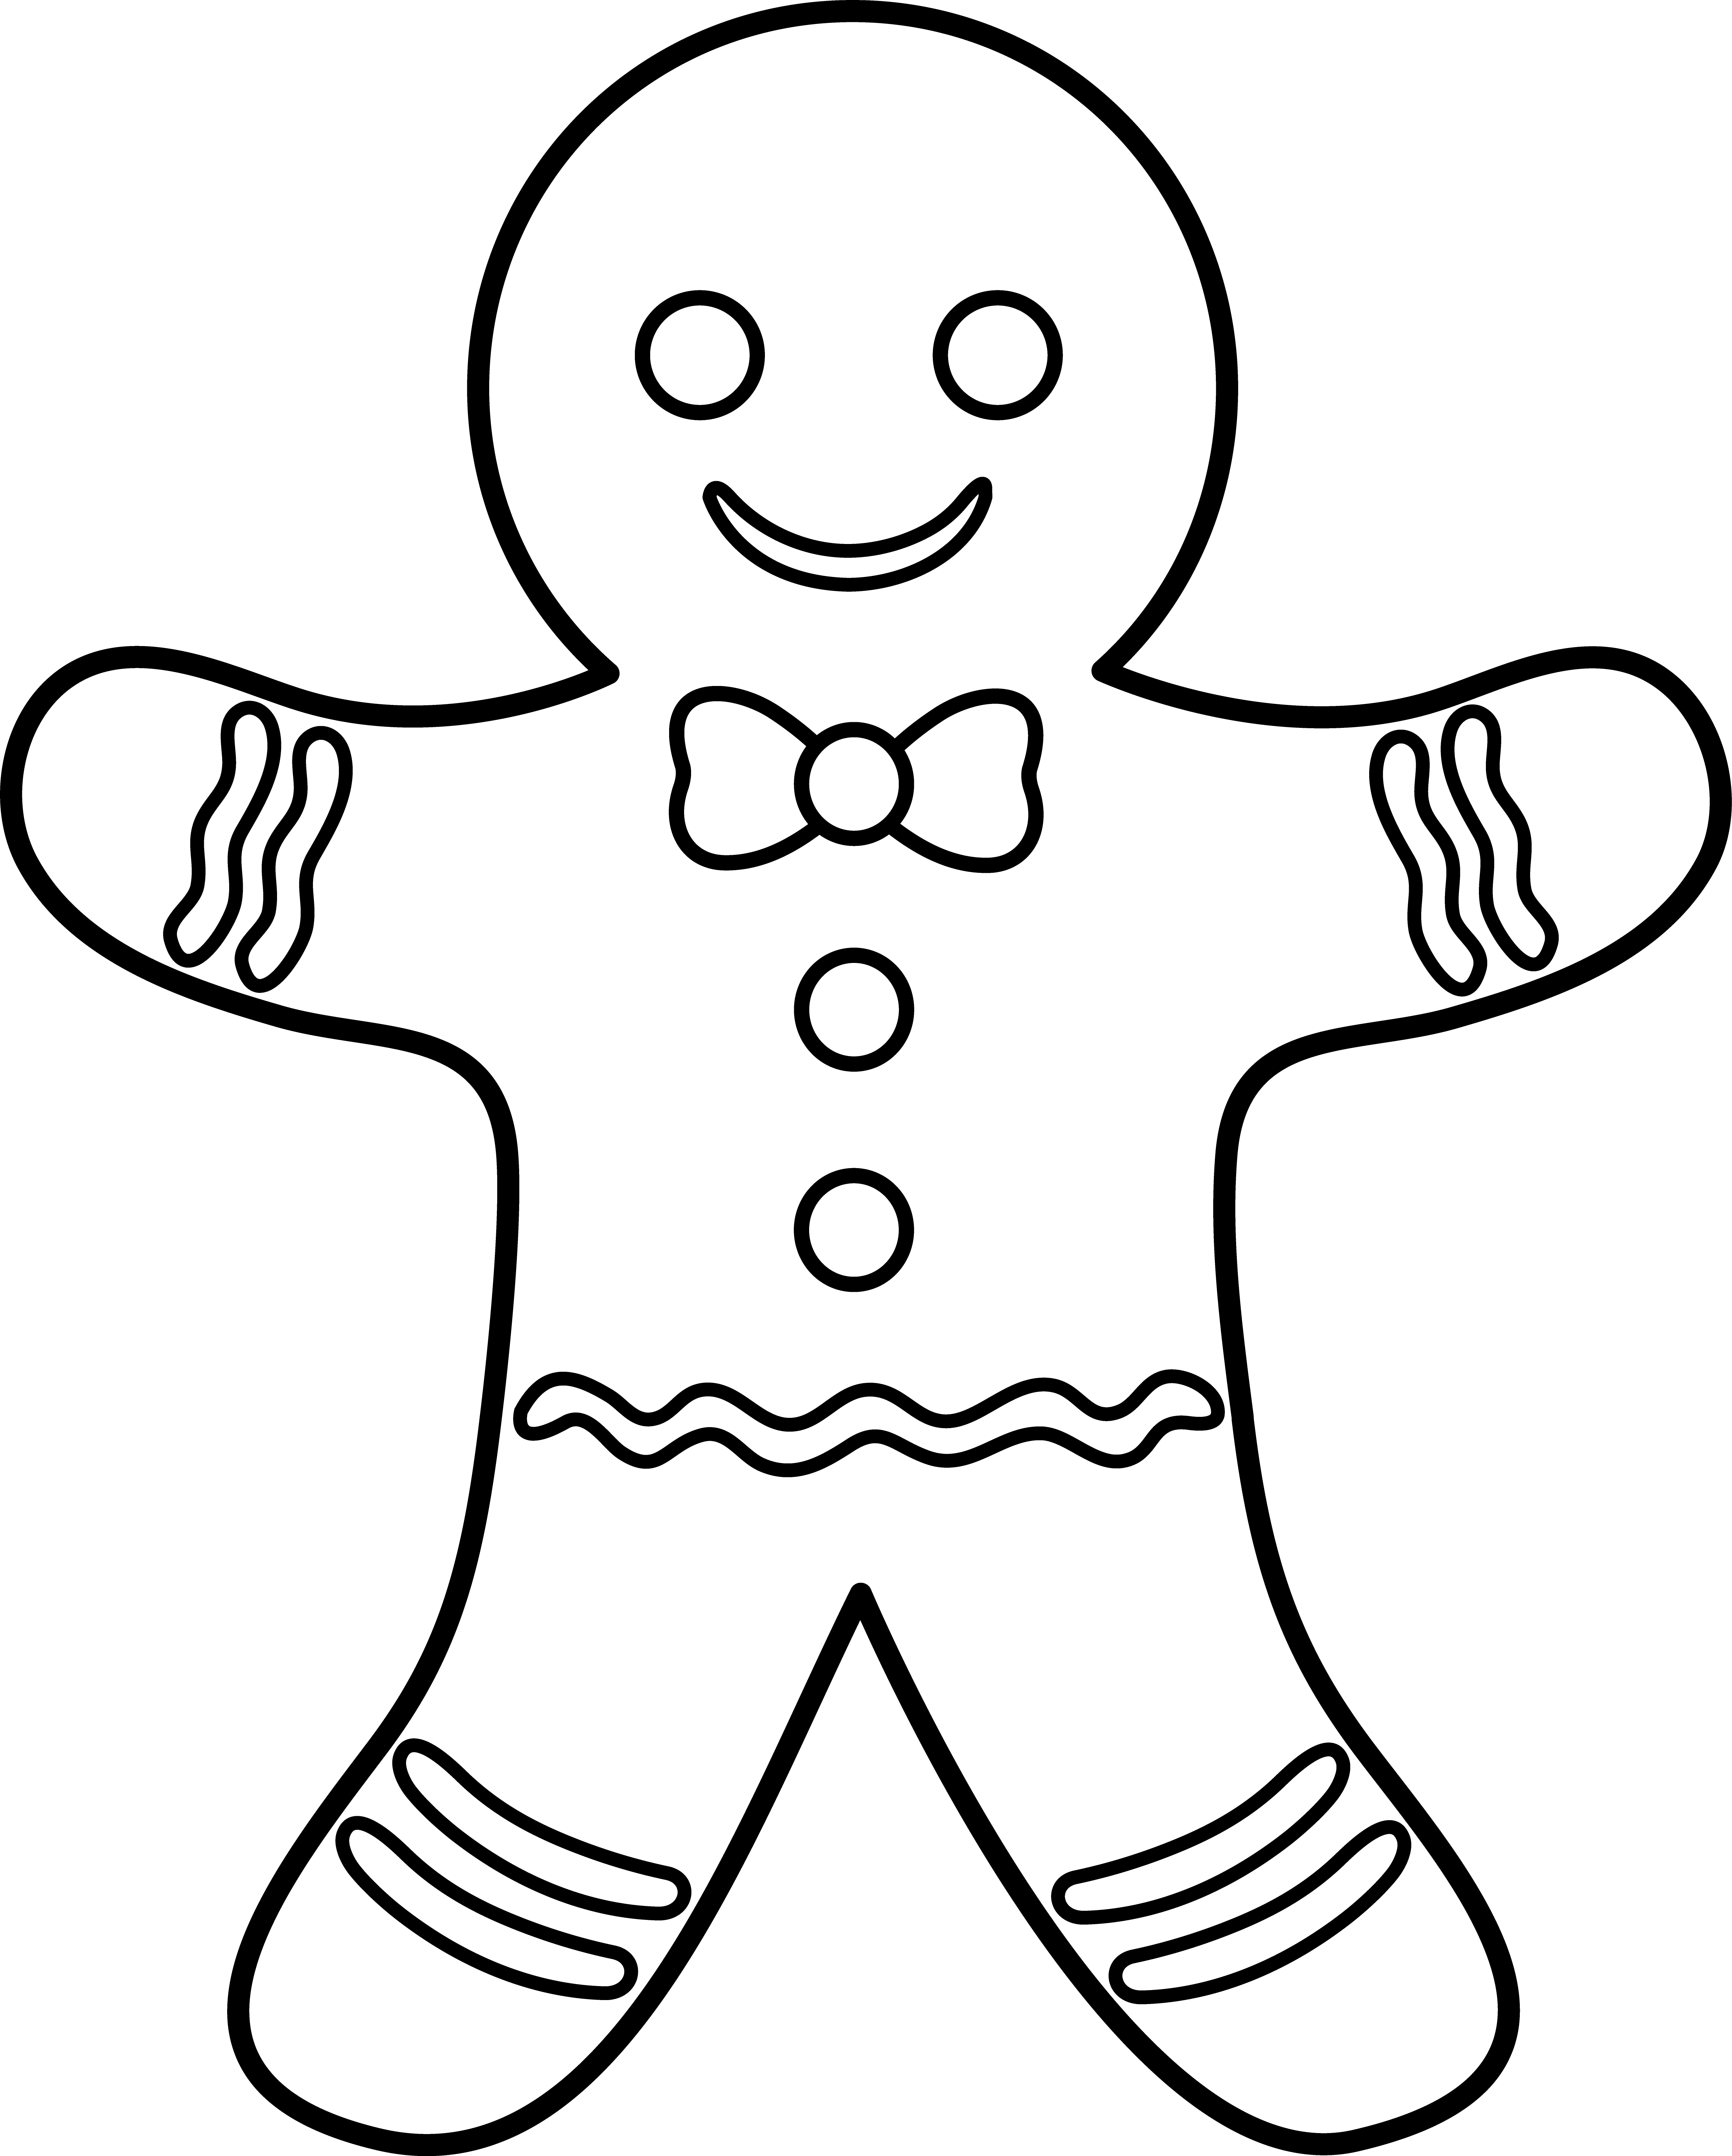 how to draw gingerbread man gingerbread man sketch at paintingvalleycom explore gingerbread draw how man to